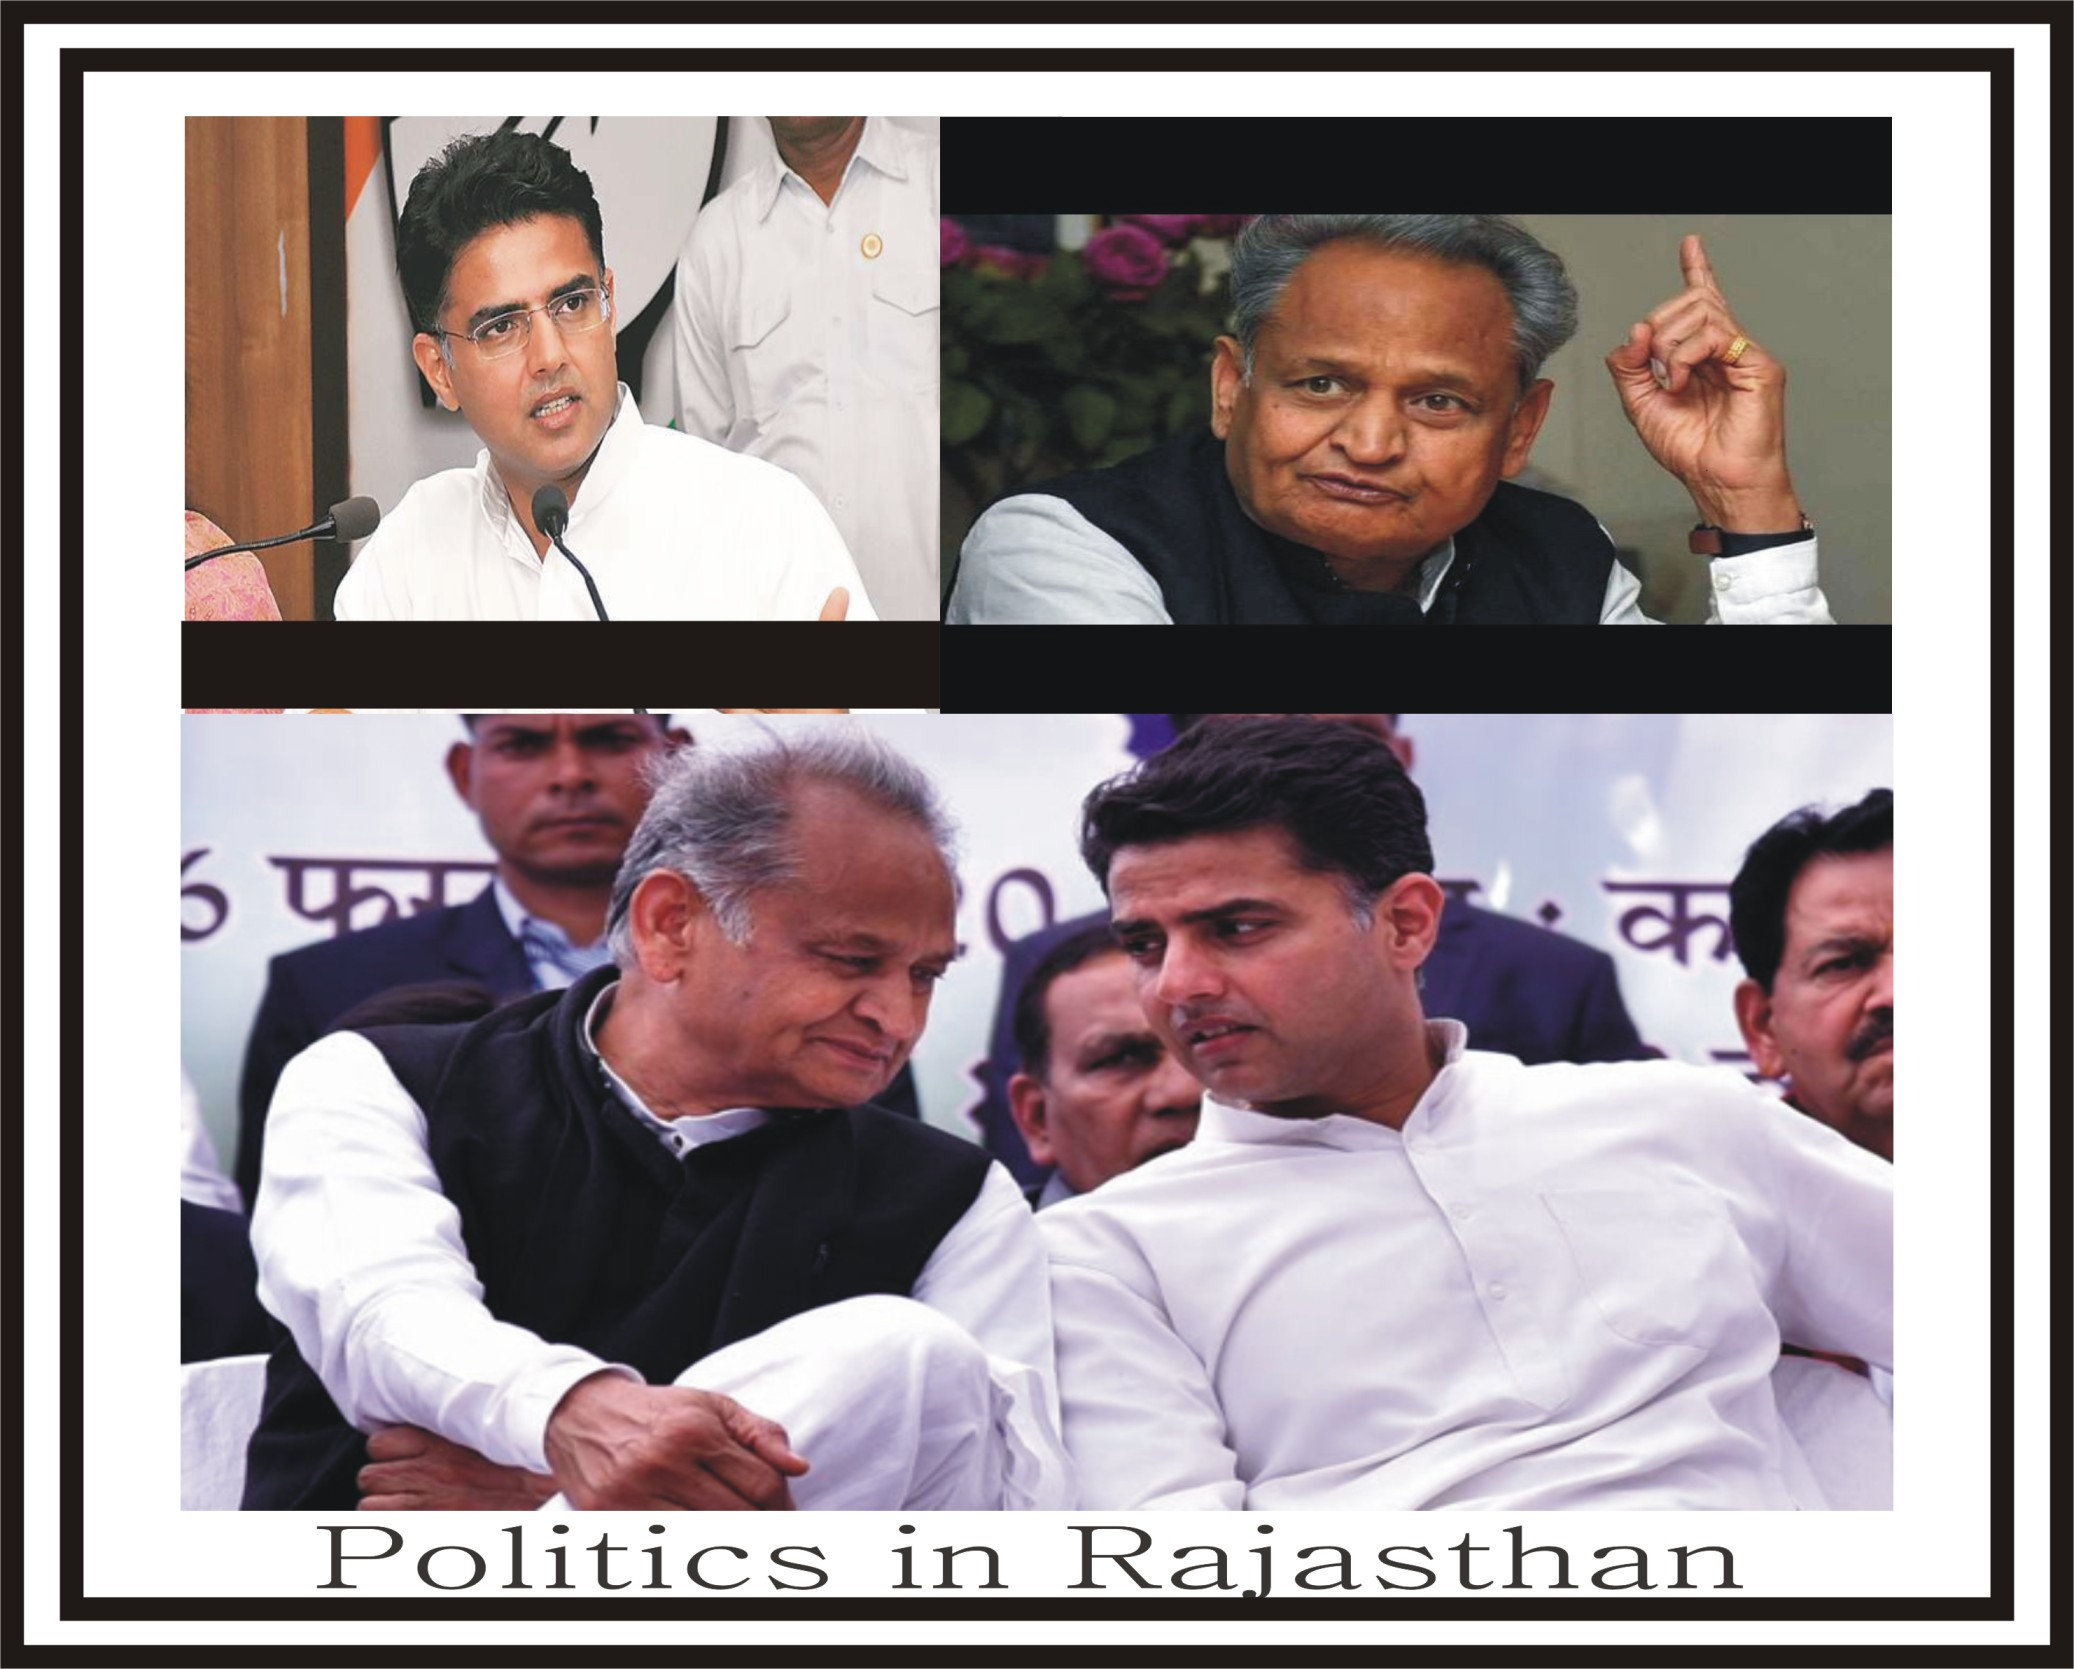 Politics in Rajasthan